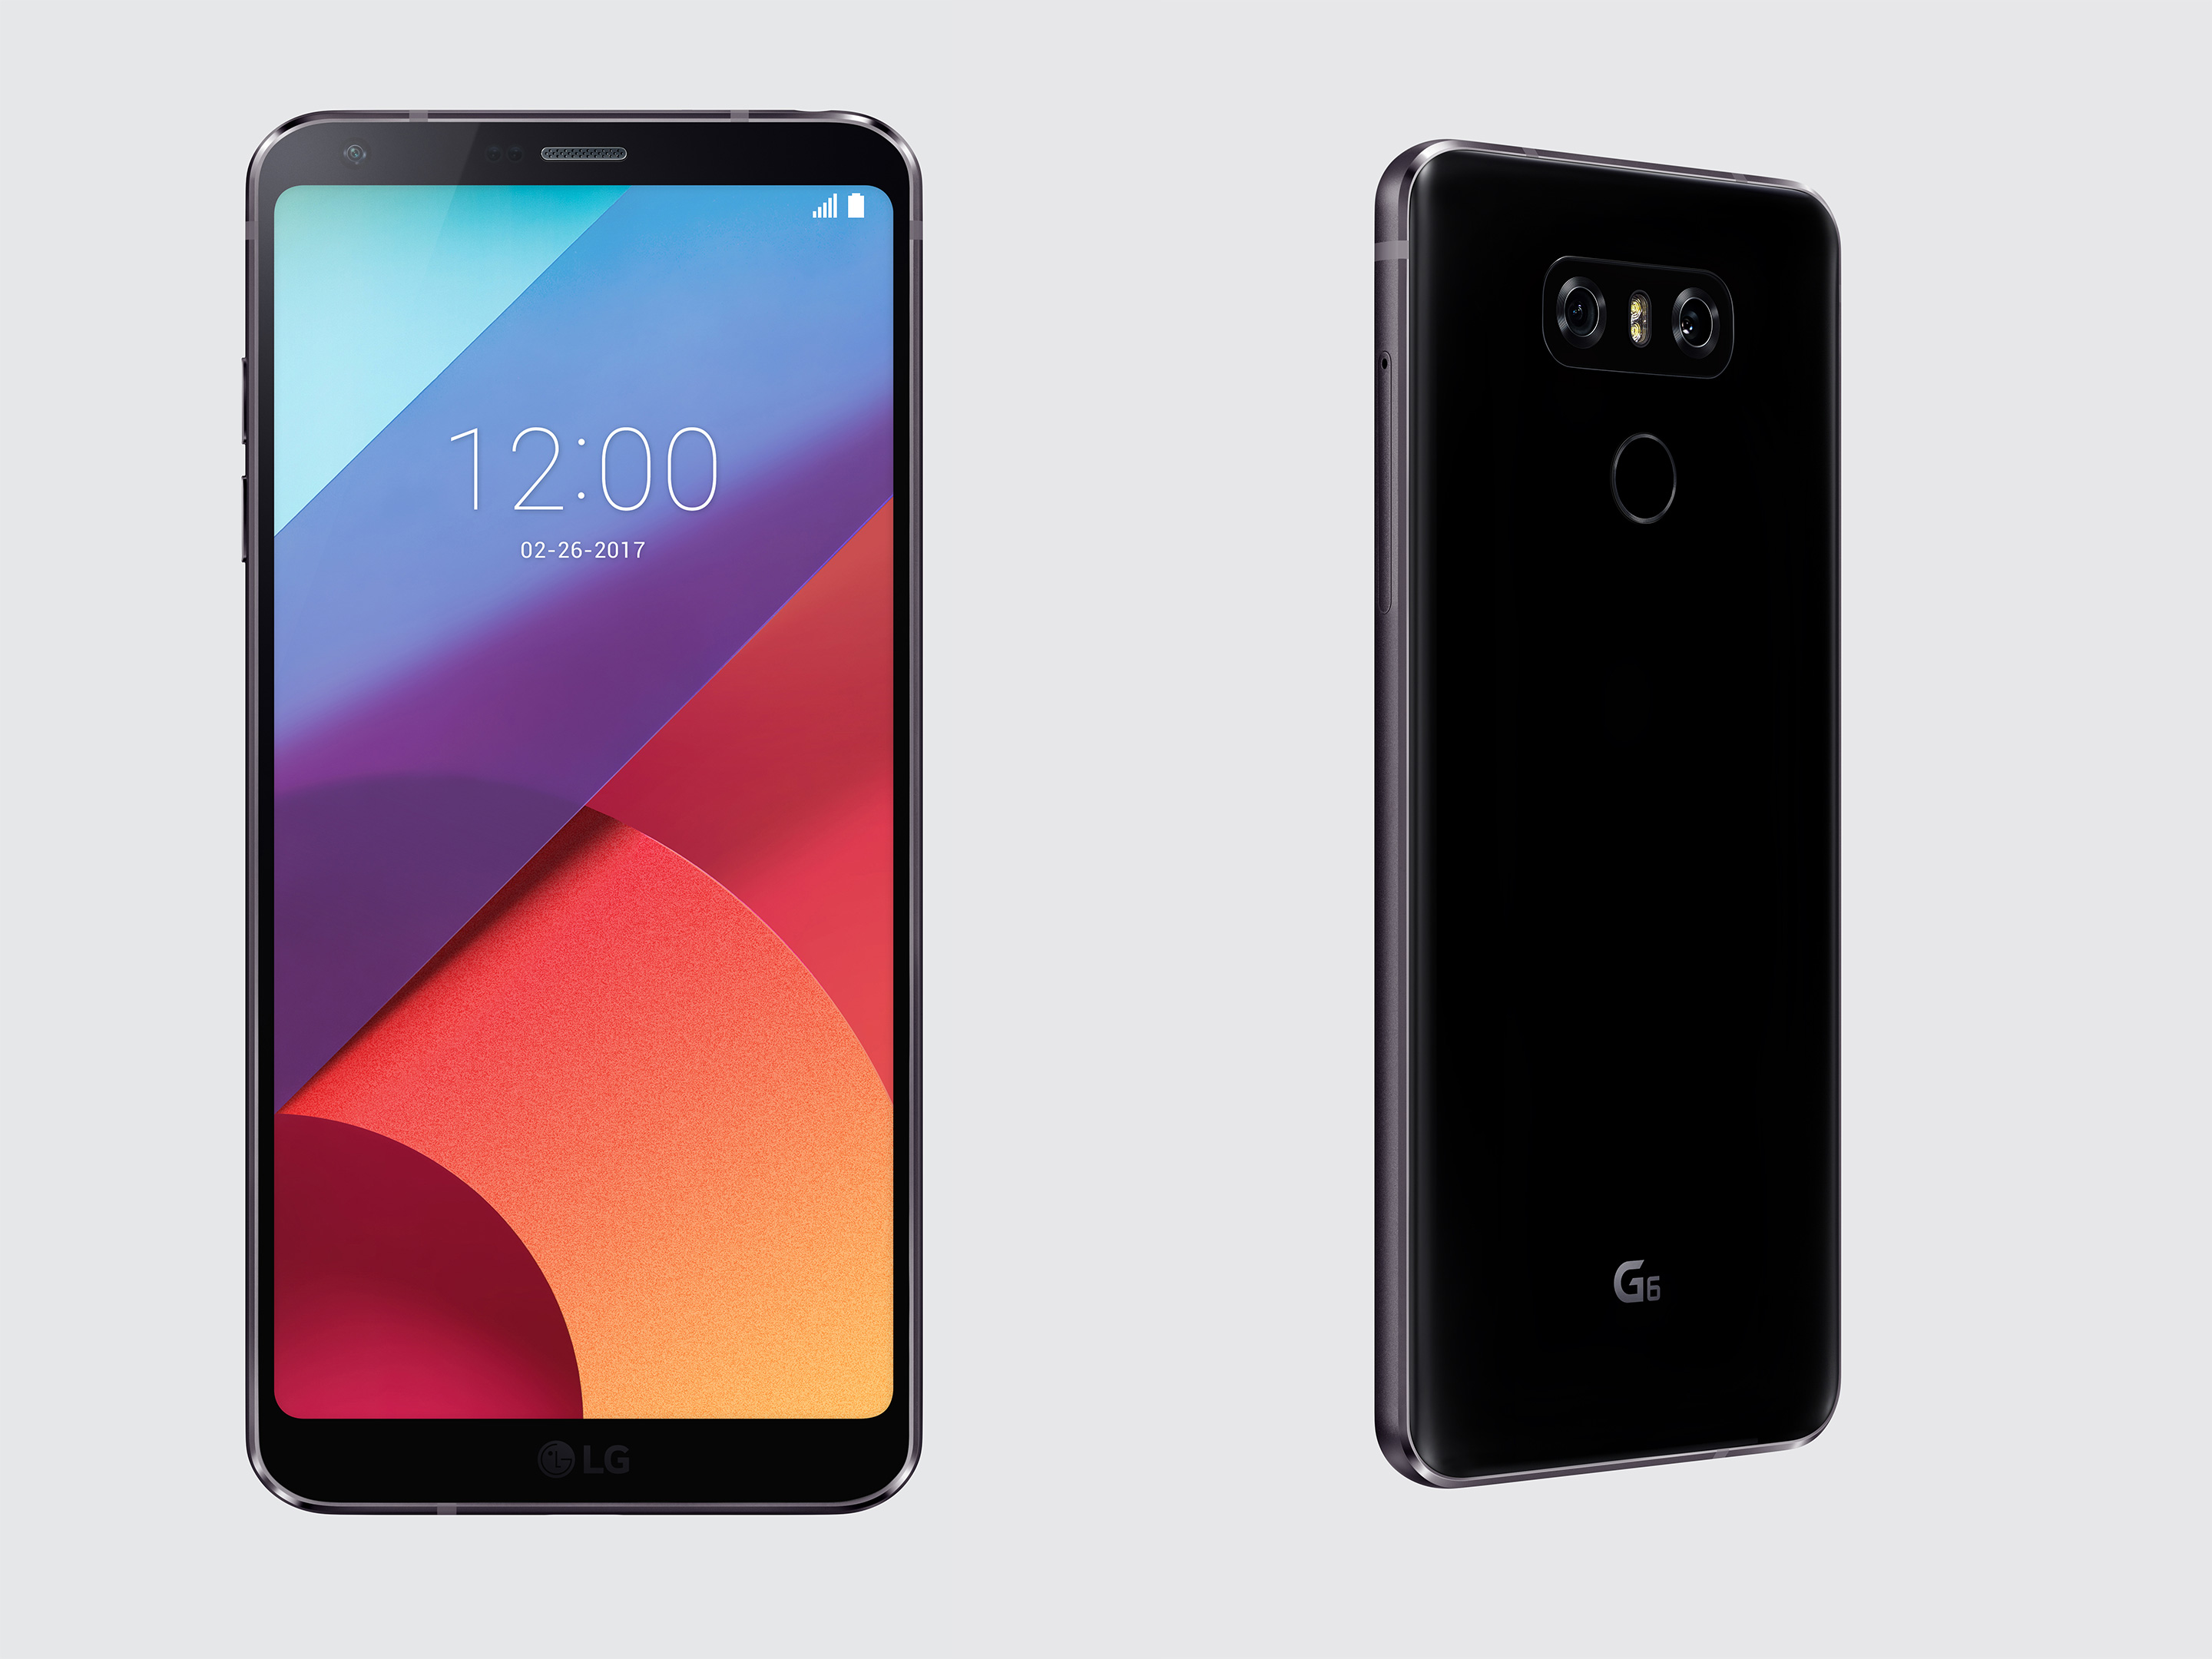 lg-g6-high-res-render